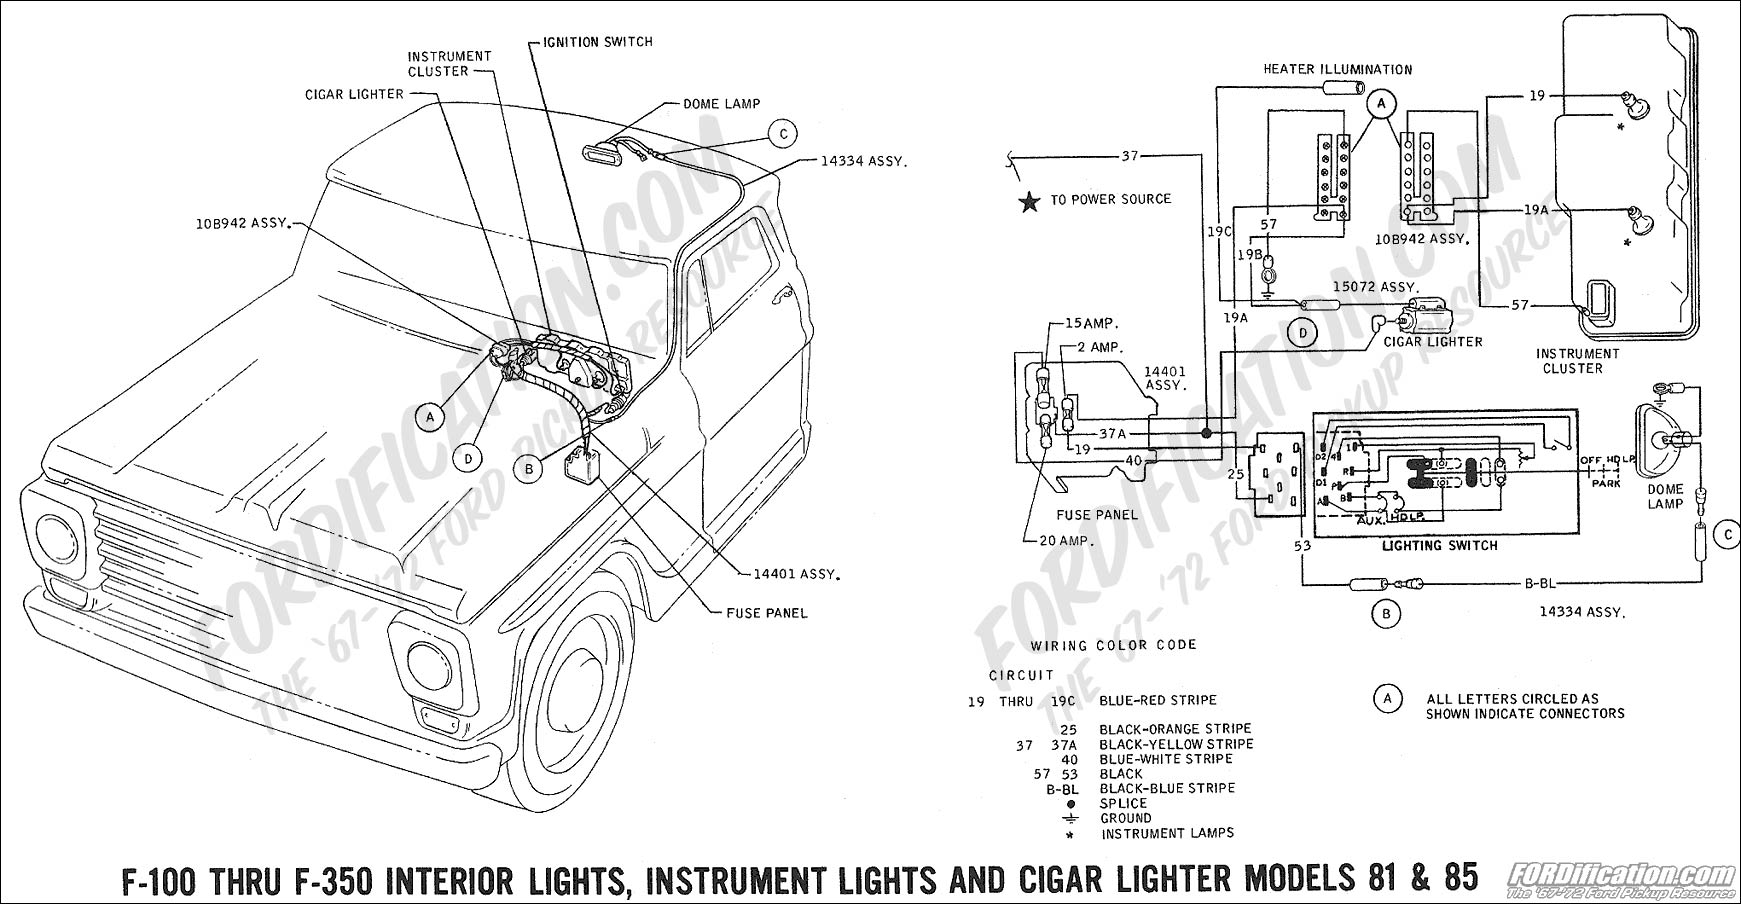 ford ranger tail light wiring diagram  1999 ford ranger tail light wiring diagram 1999 wiring diagram on 1999 ford ranger tail light